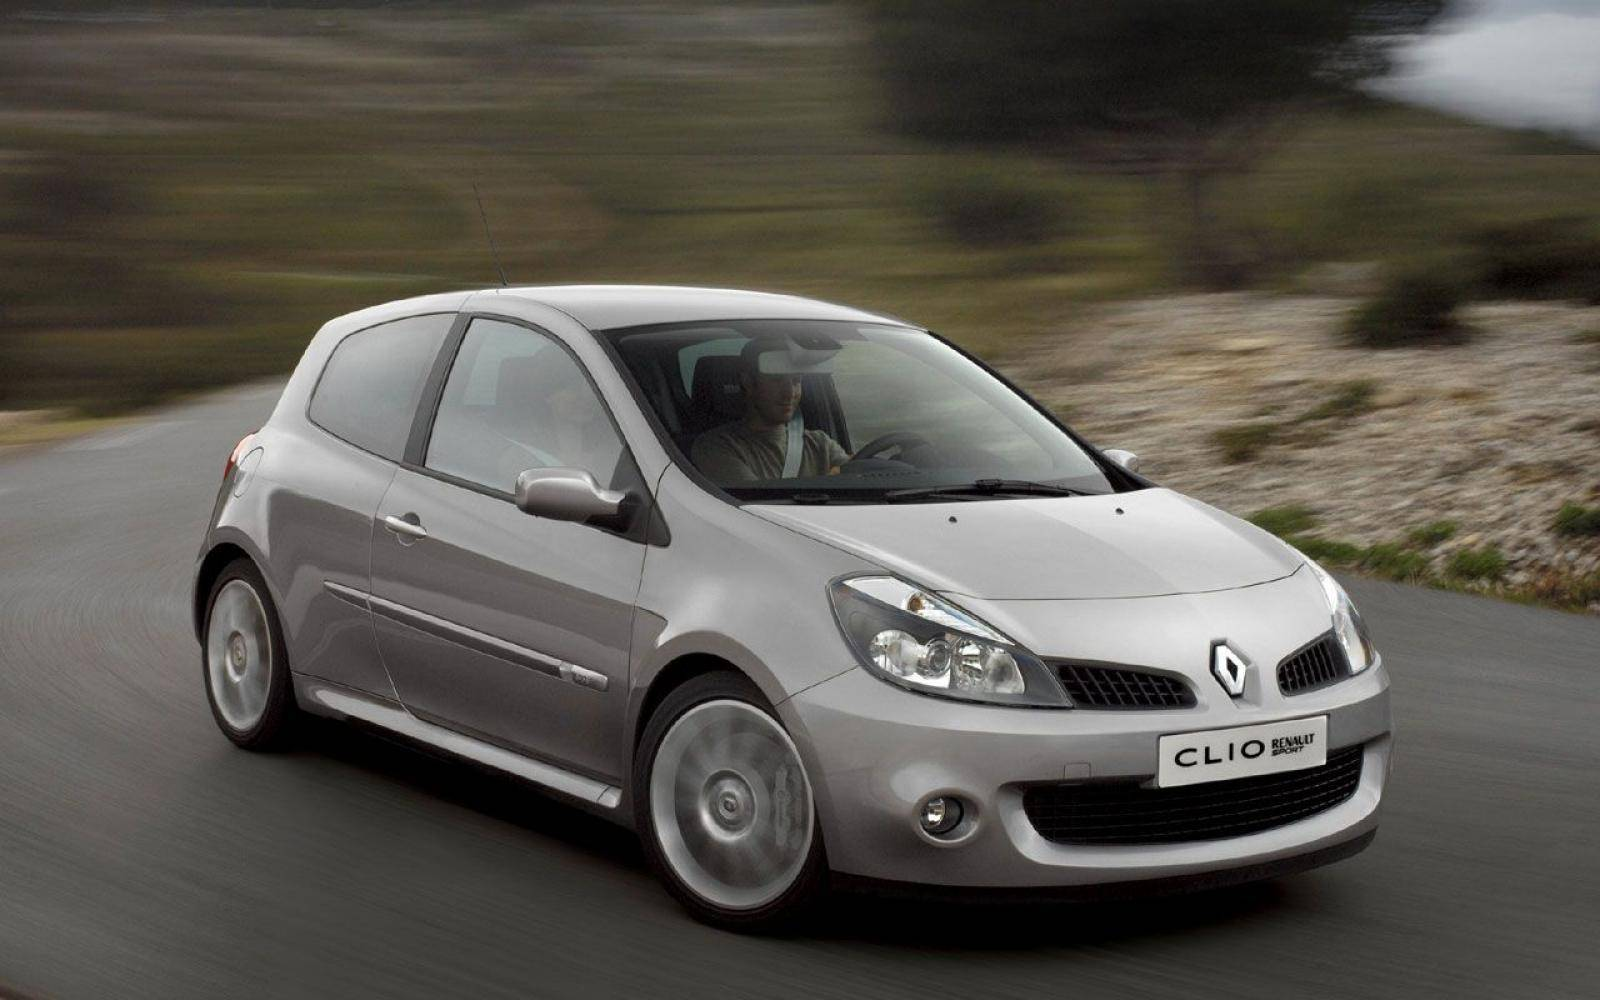 Hot-hatch: Renault Clio RS